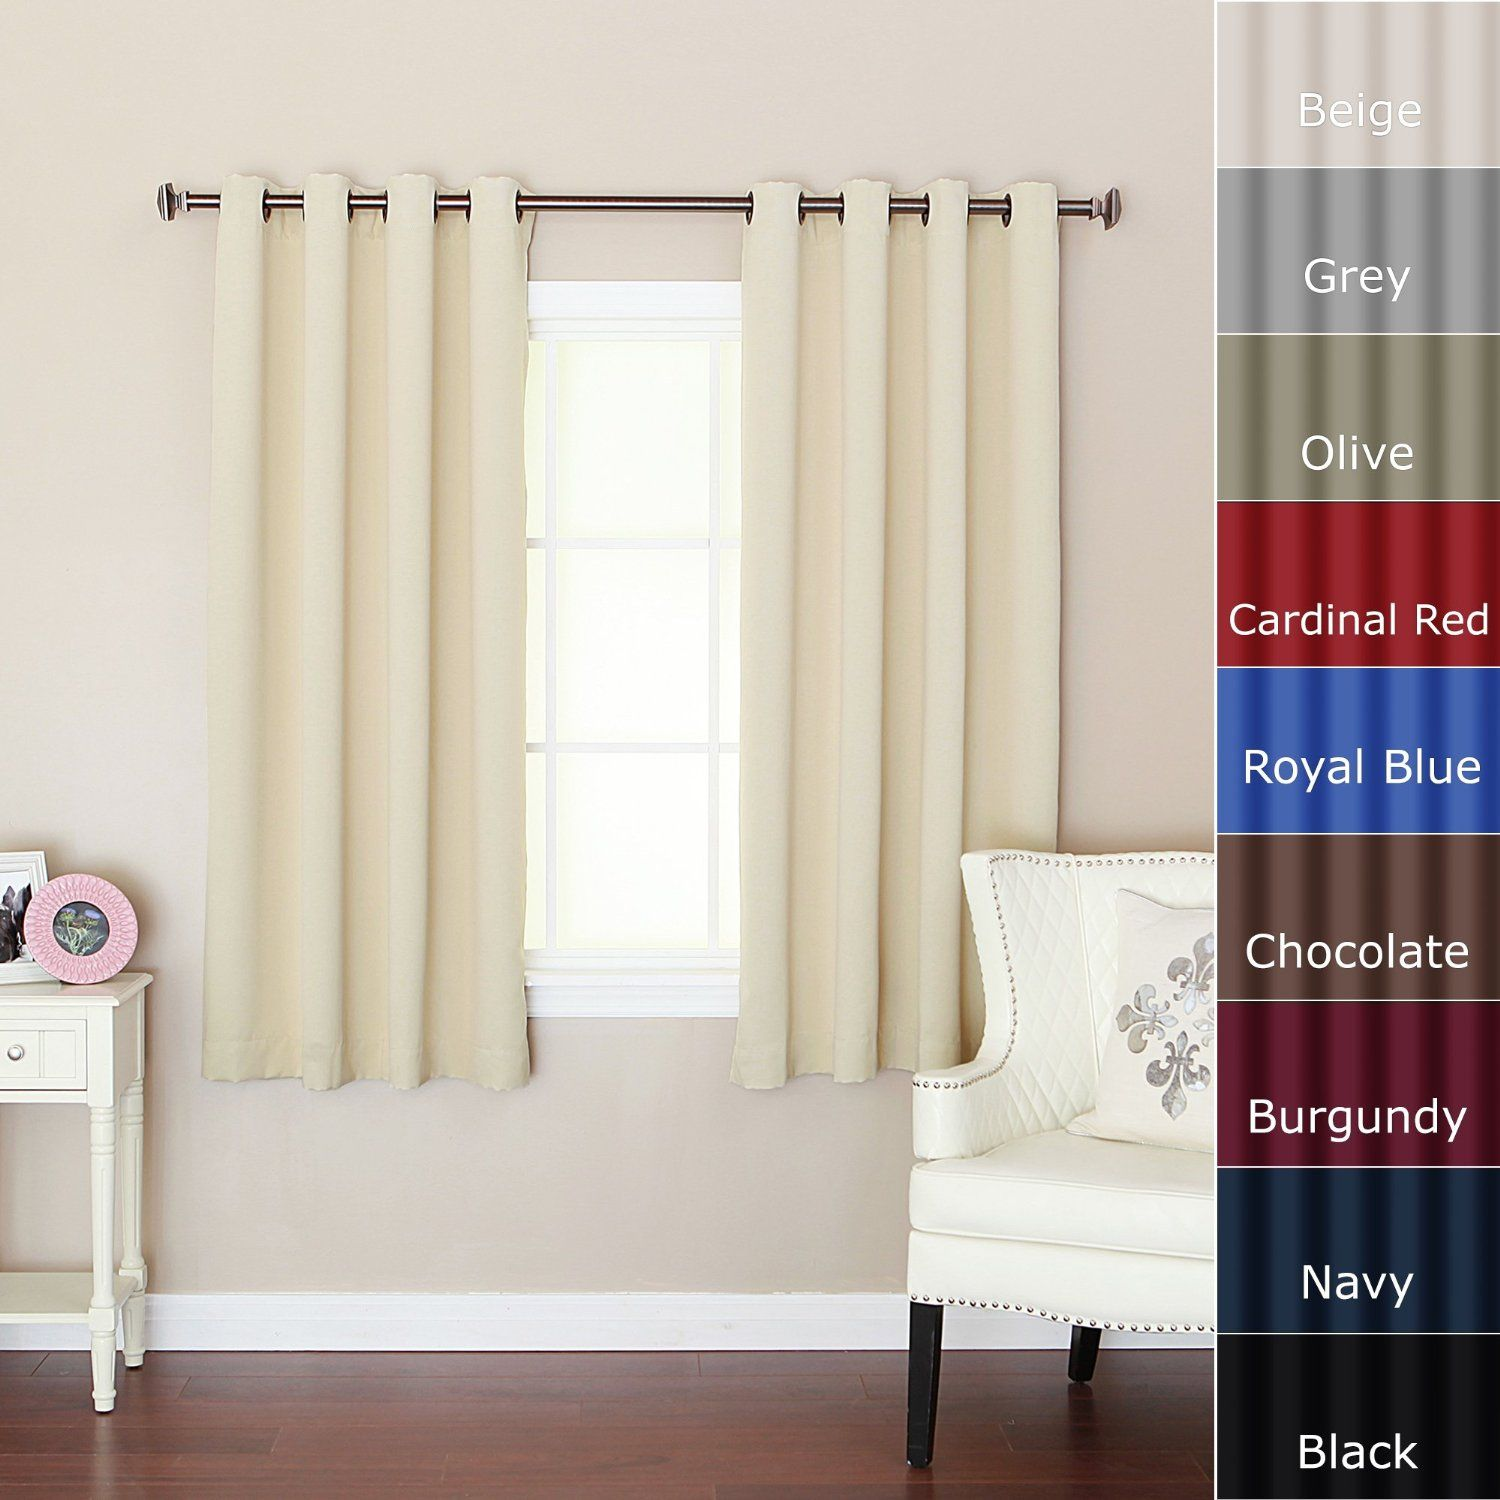 elegant image heavy supersoft curtain curtainsal blackout remarkable insulated curtains cheap bedroom amazon curtainscurtains of full size best thermal design girls